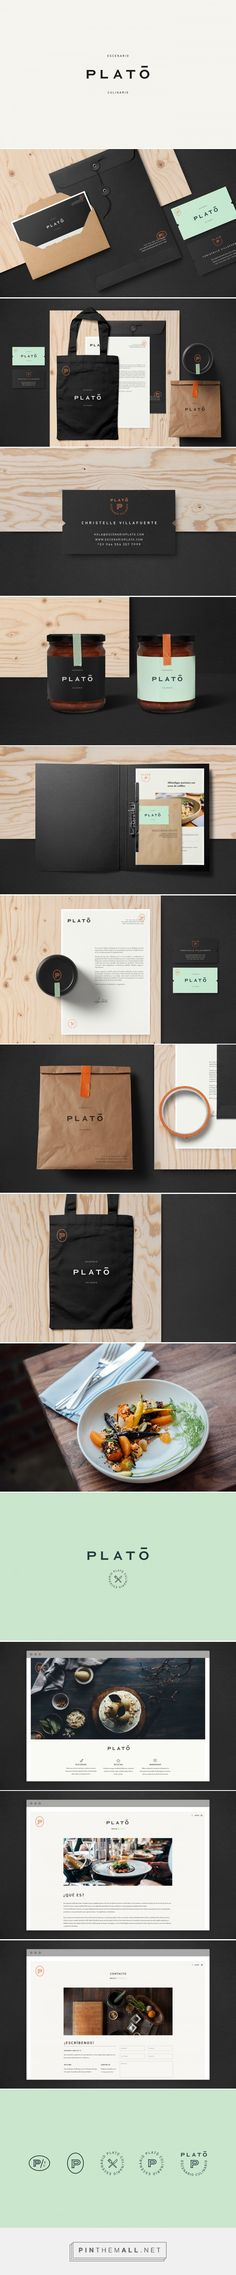 Plató Foodie Lifestyle Branding by Treceveinte | Fivestar Branding Agency – Design and Branding Agency & Curated Inspiration Gallery